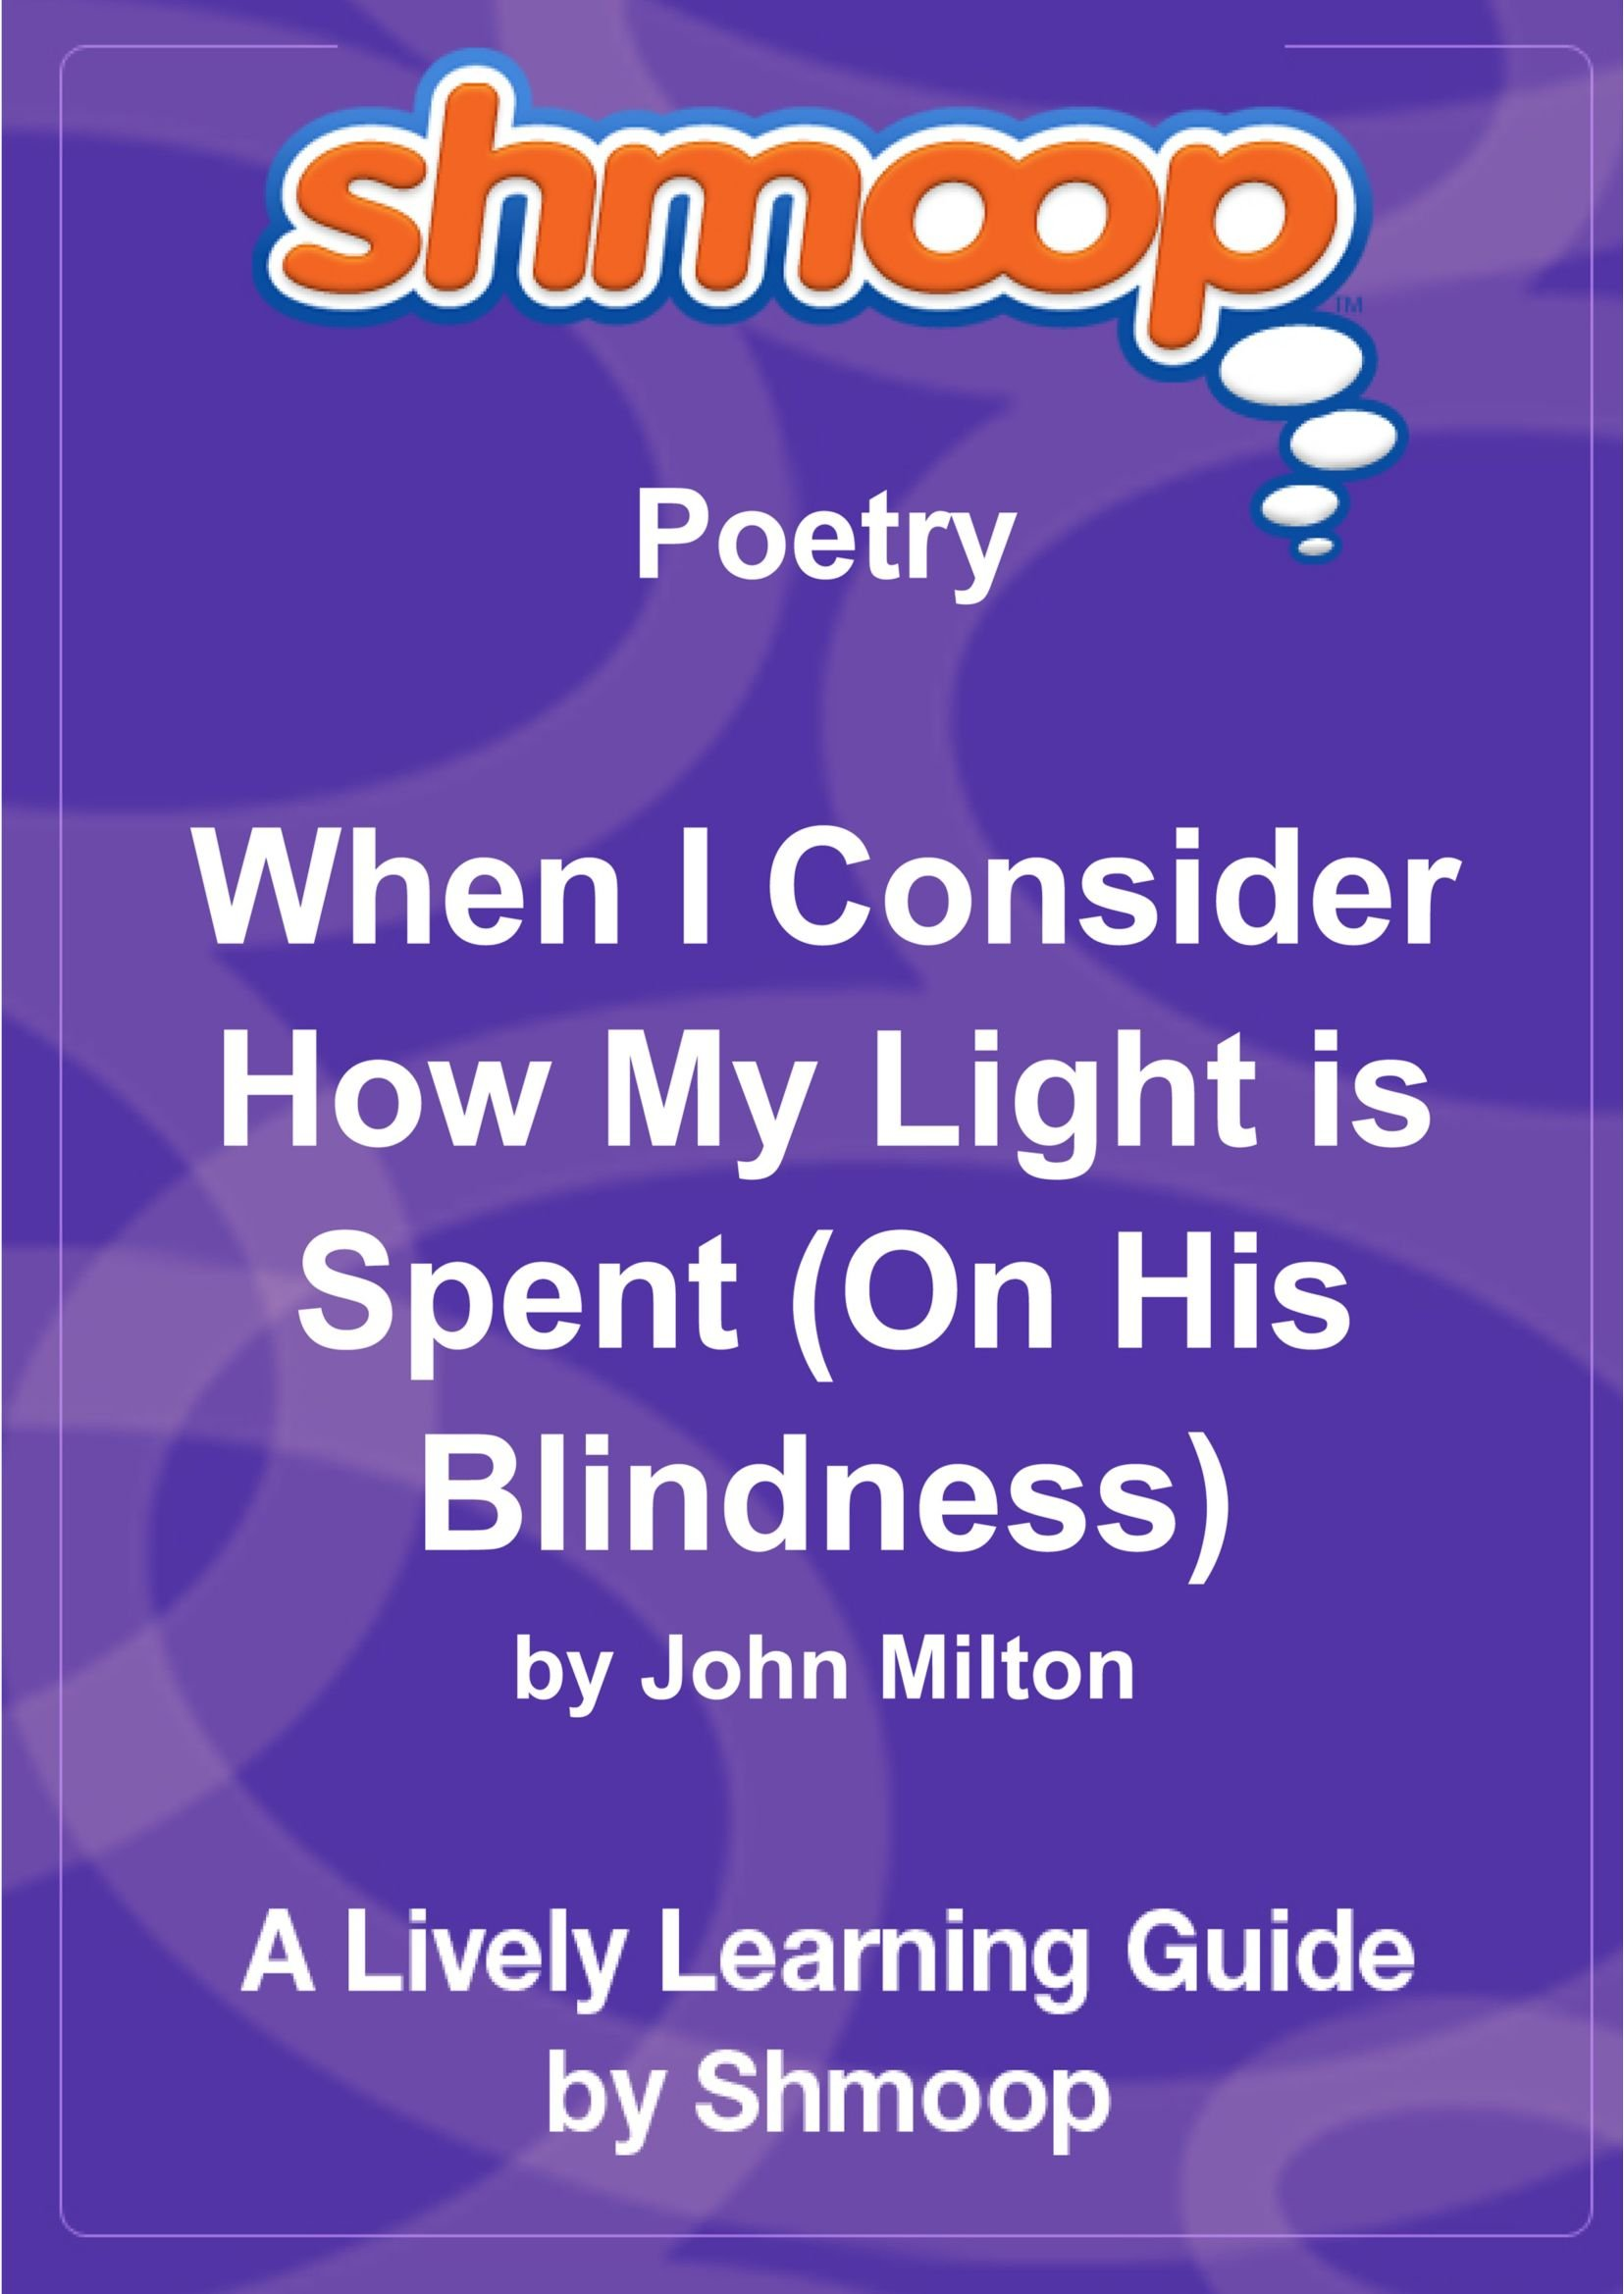 on his blindness poem line by line analysis